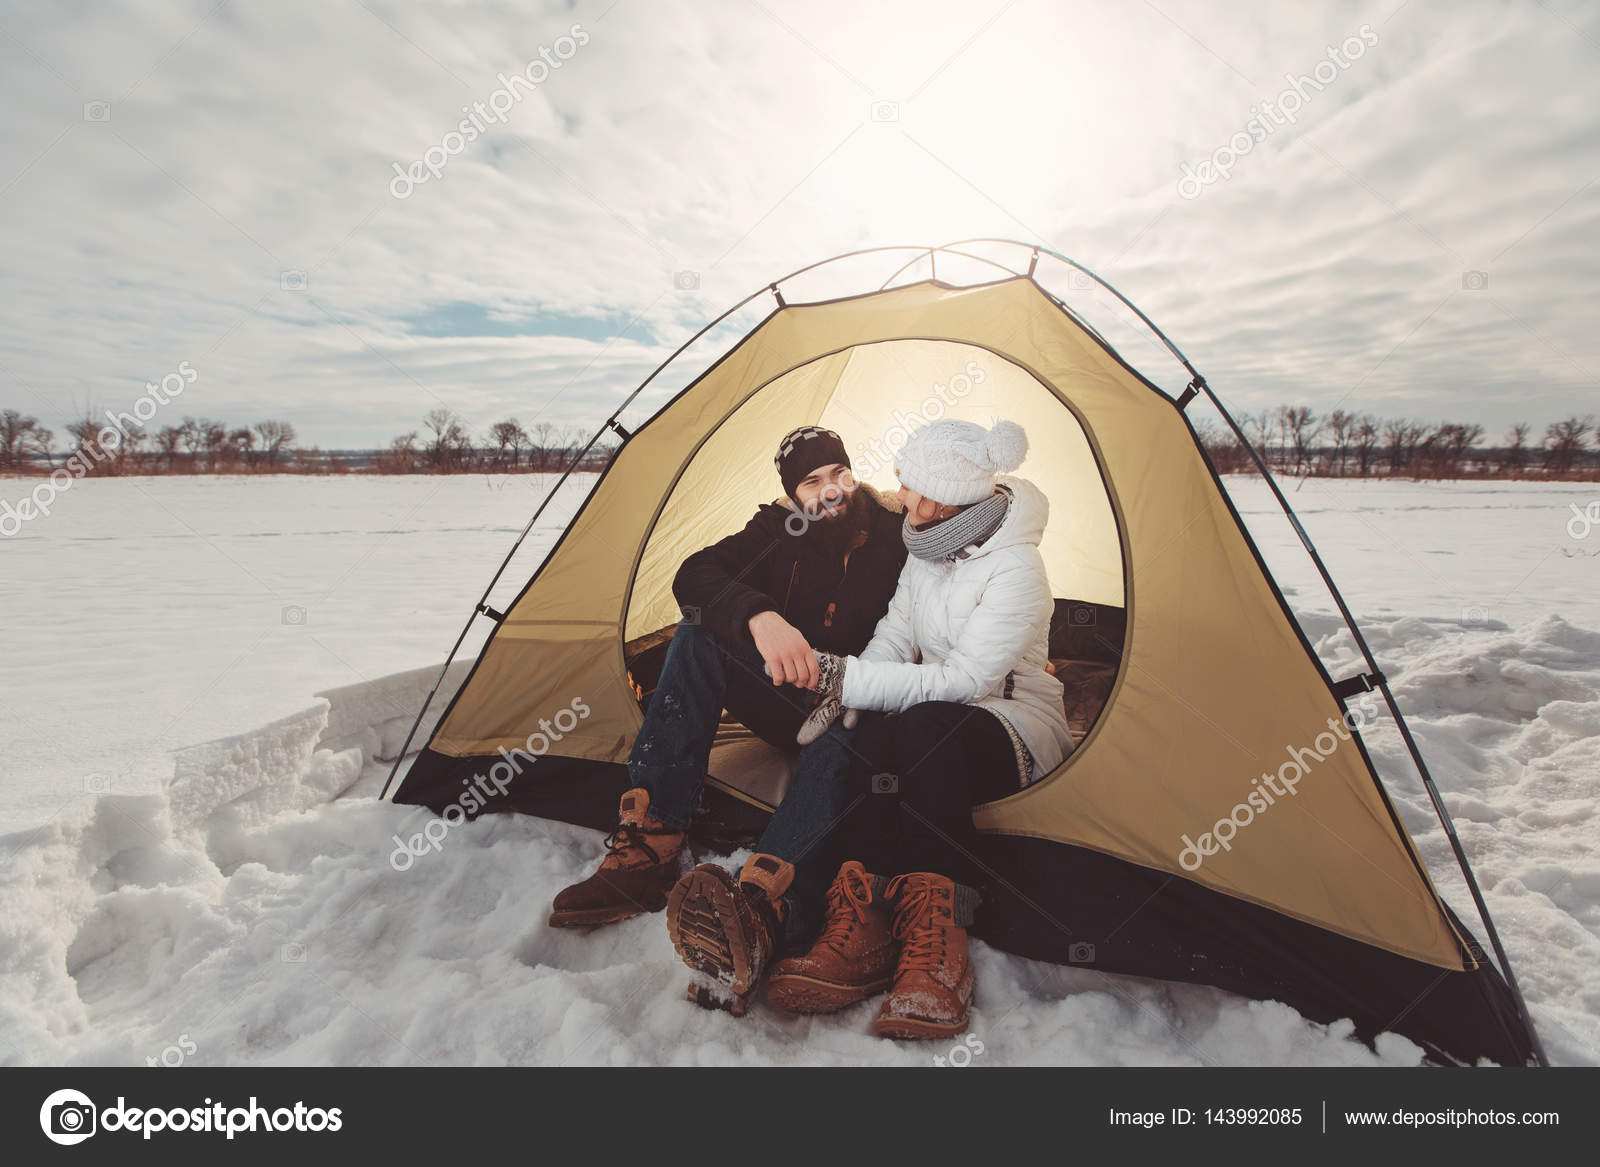 Young couple in tent hold hands at winter hike u2014 Stock Photo #143992085 & Young couple in tent hold hands at winter hike u2014 Stock Photo ...